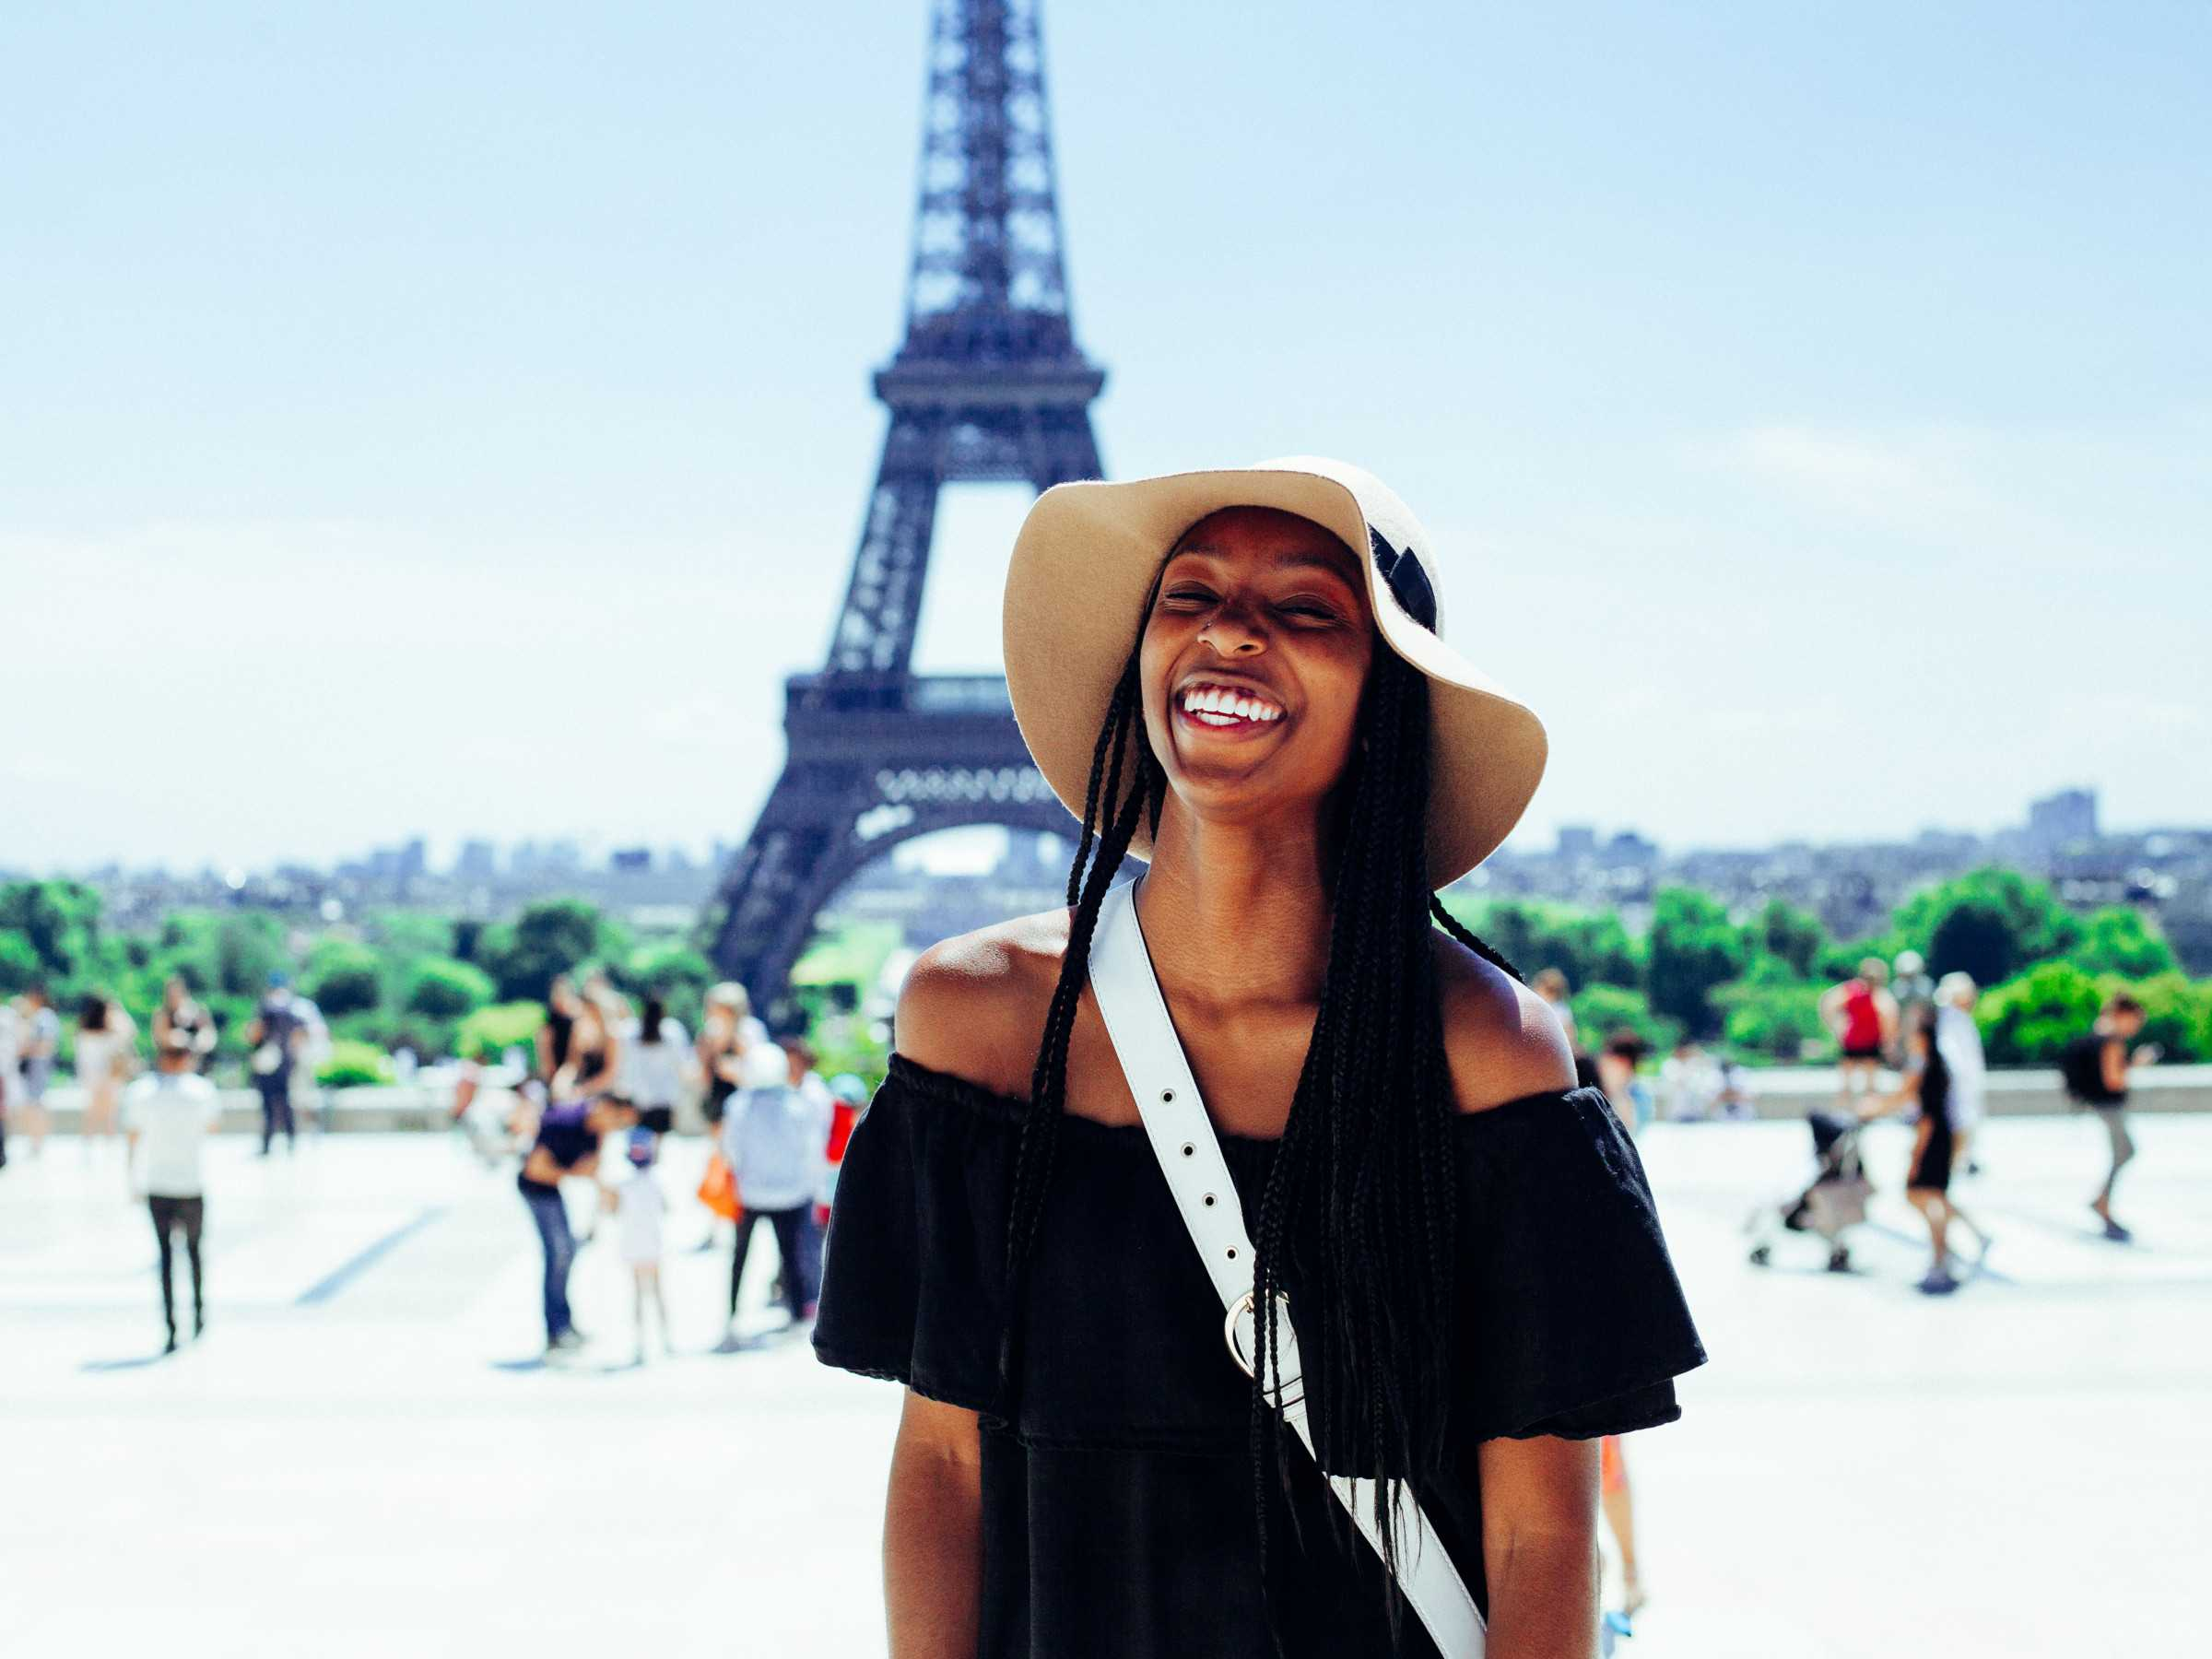 young lady wearing dark clothes and light hat smiles